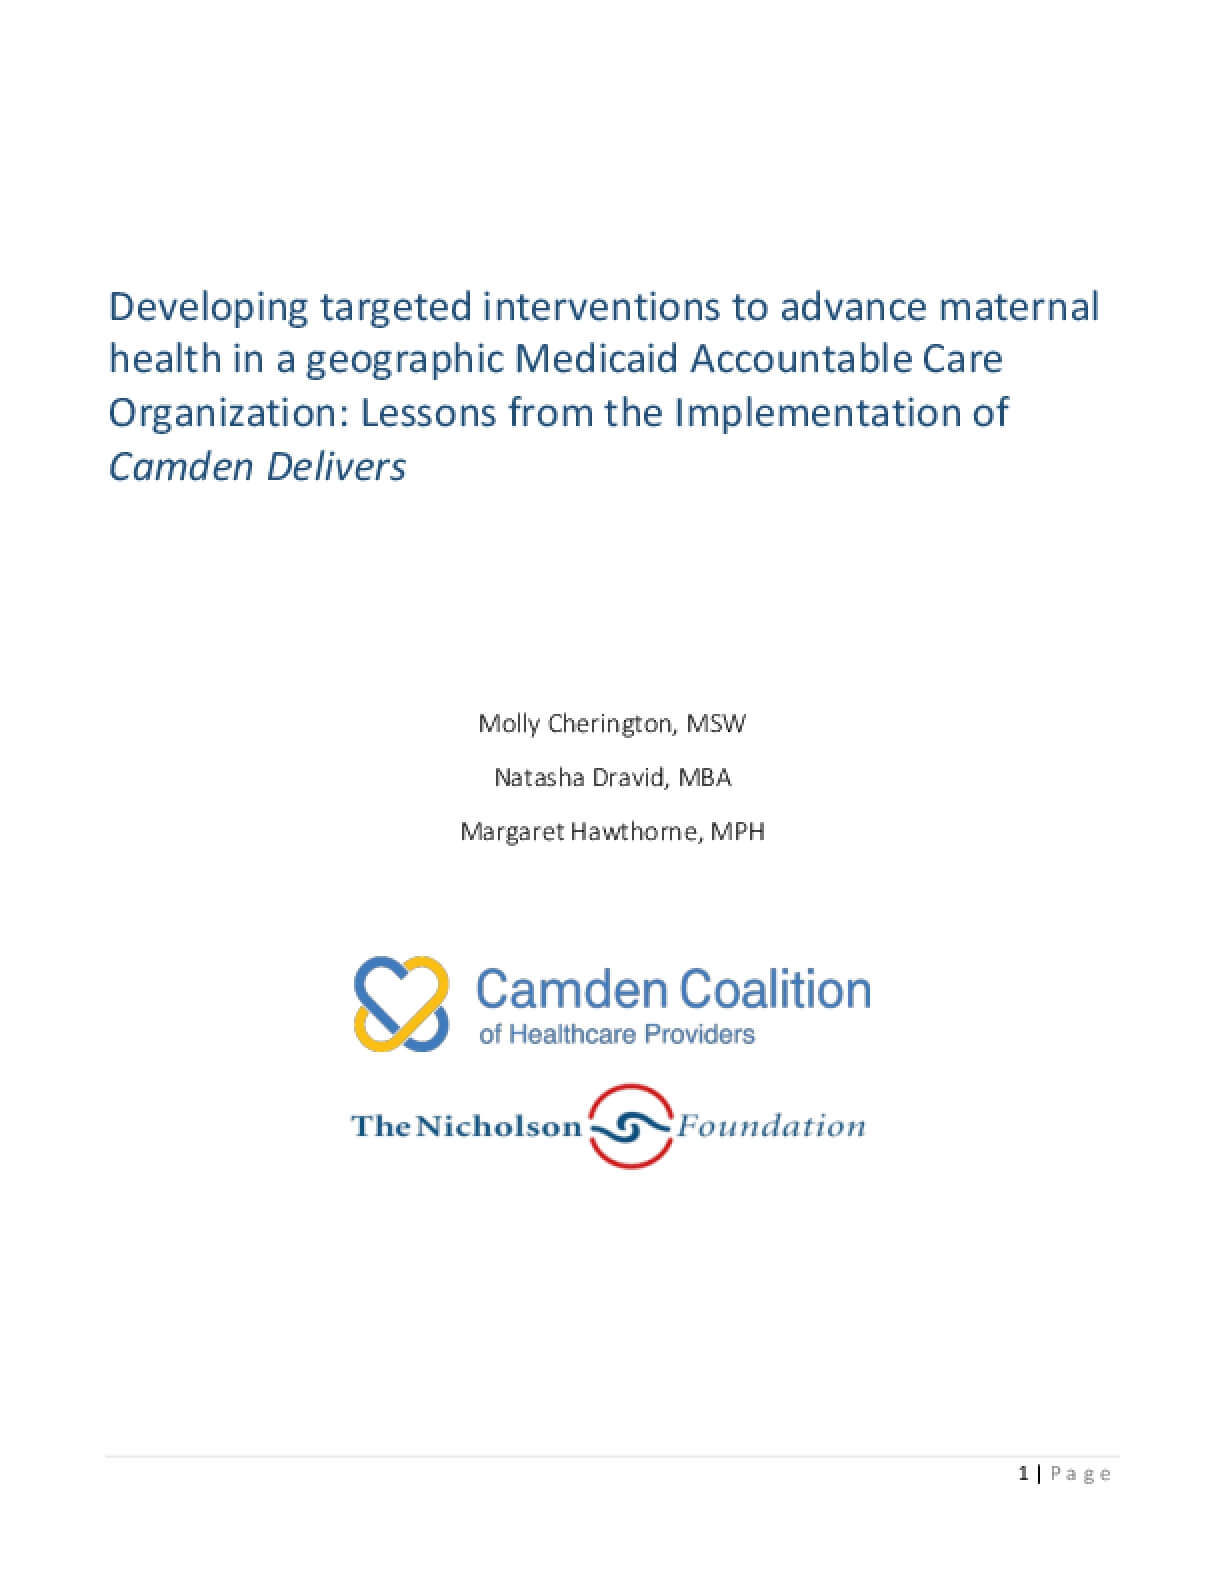 Developing Targeted Interventions to Advance Maternal Health in a Geographic Medicaid Accountable Care Organization: Lessons From the Implementation of Camden Delivers